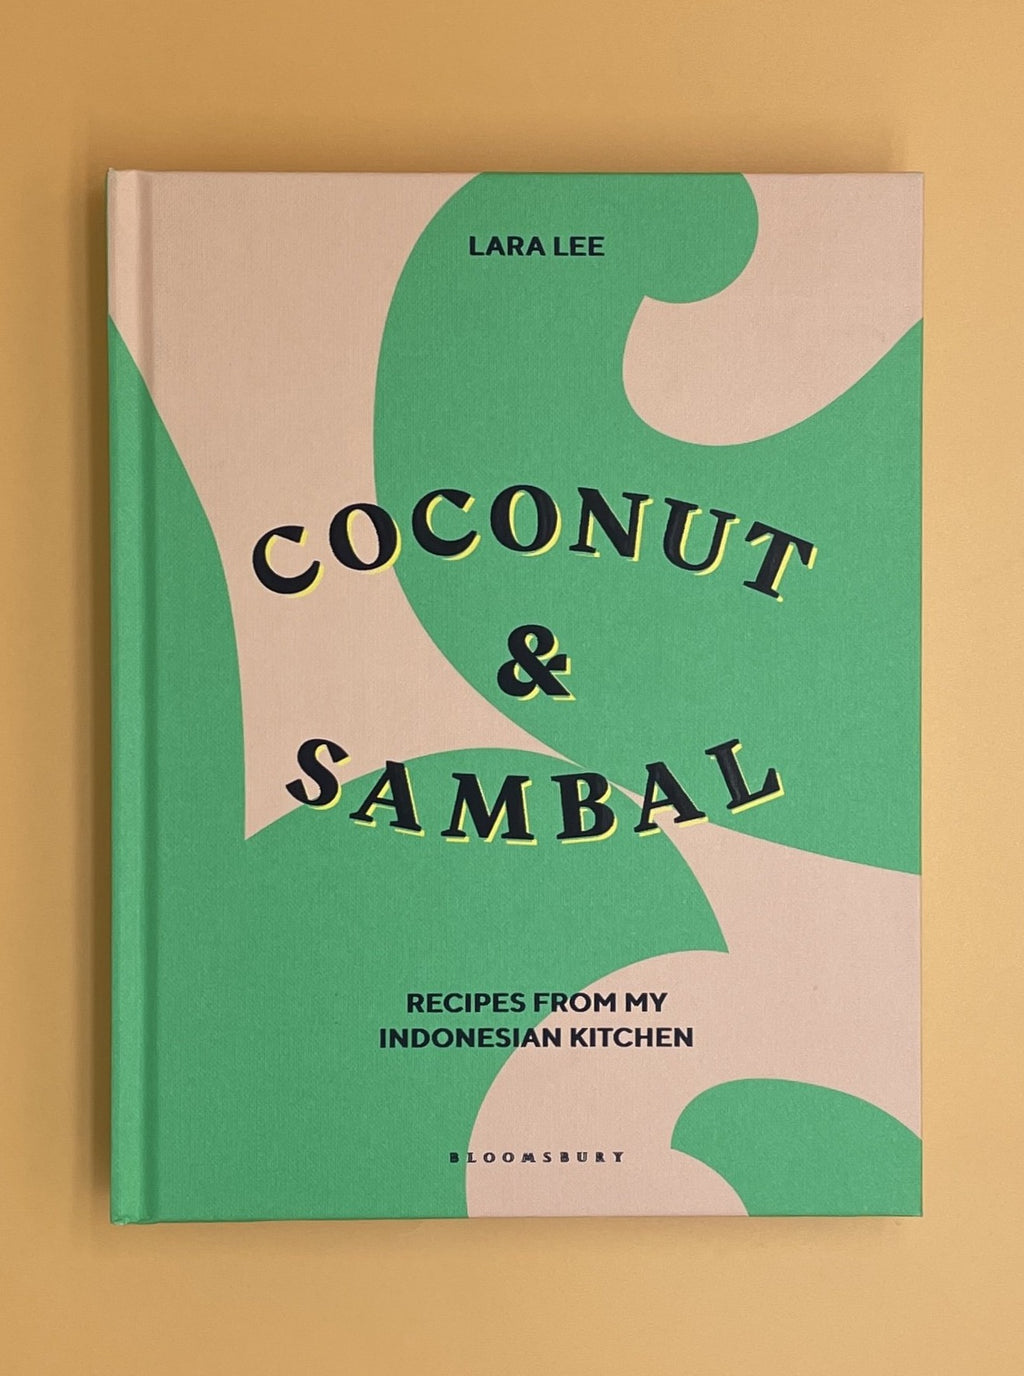 Coconut & Sambal: Recipes from My Indonesian Kitchen (Lara Lee)